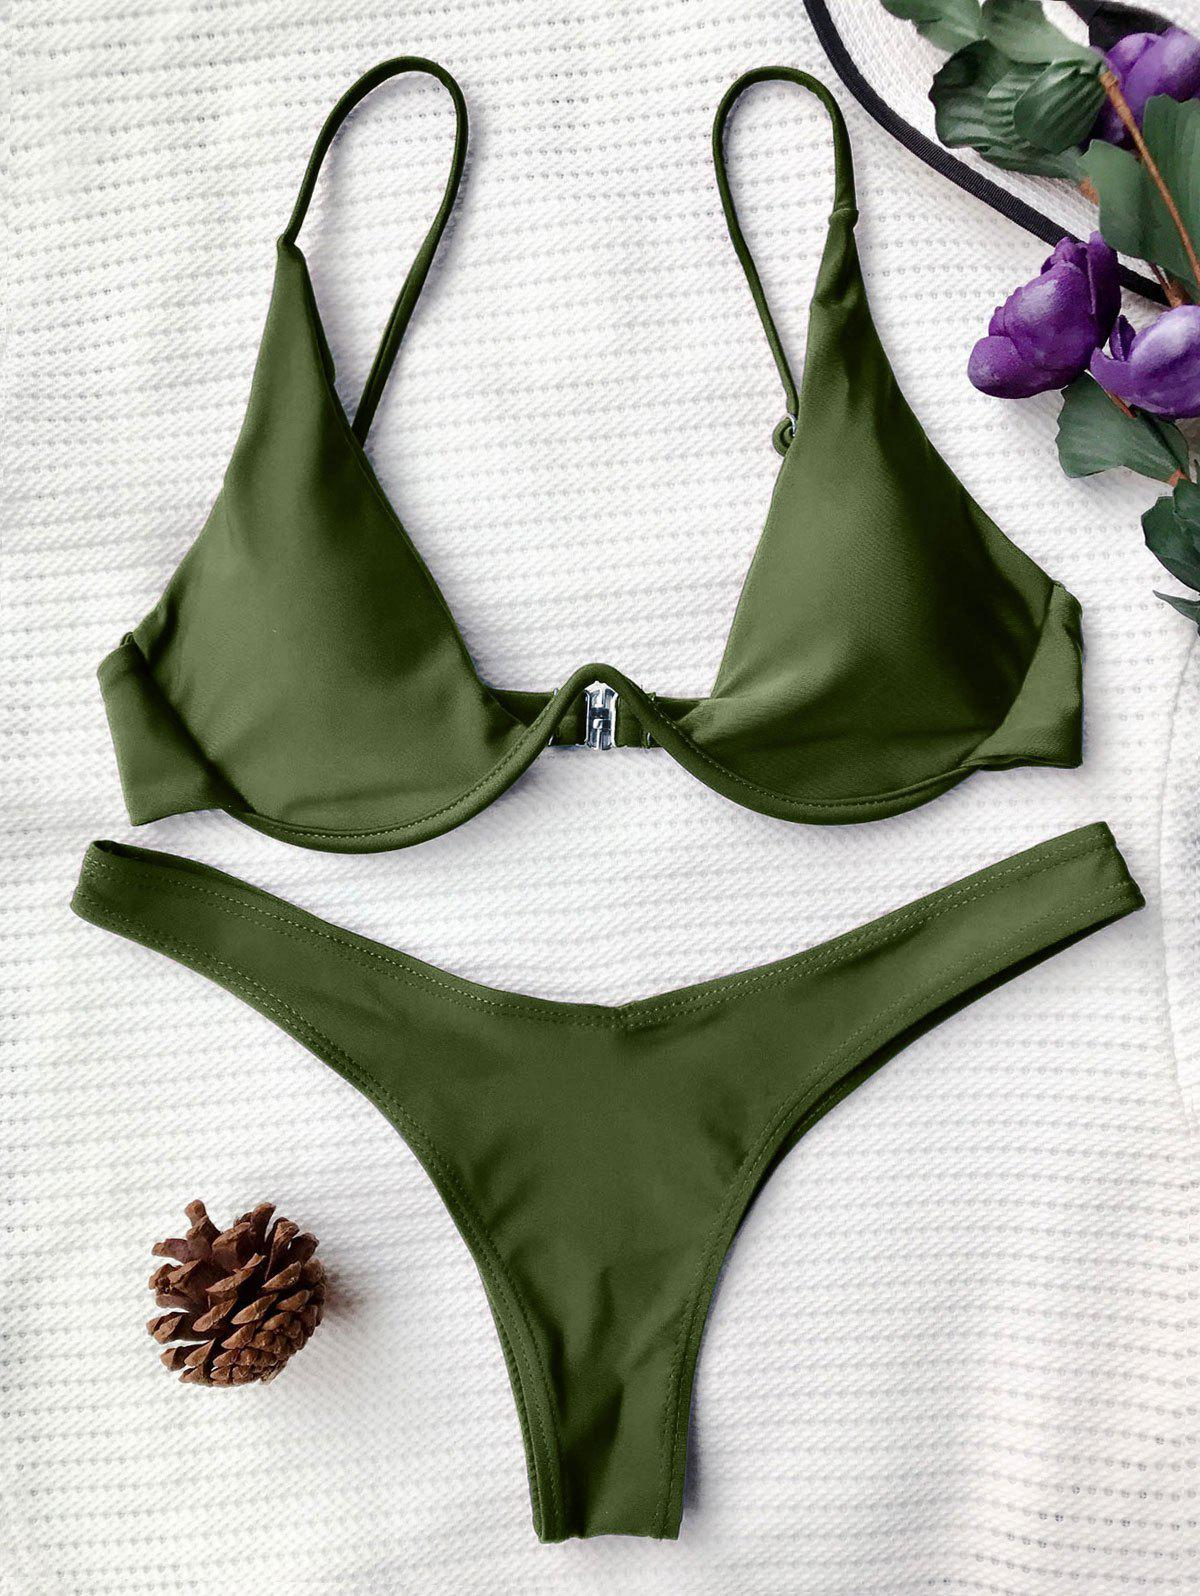 Underwired Plunge Bathing SuitWOMEN<br><br>Size: L; Color: GREEN; Swimwear Type: Bikini; Gender: For Women; Material: Nylon,Polyester,Spandex; Bra Style: Padded; Support Type: Underwire; Neckline: Spaghetti Straps; Pattern Type: Solid; Waist: Low Waisted; Elasticity: Elastic; Weight: 0.2000kg; Package Contents: 1 x Top  1 x Bottoms;